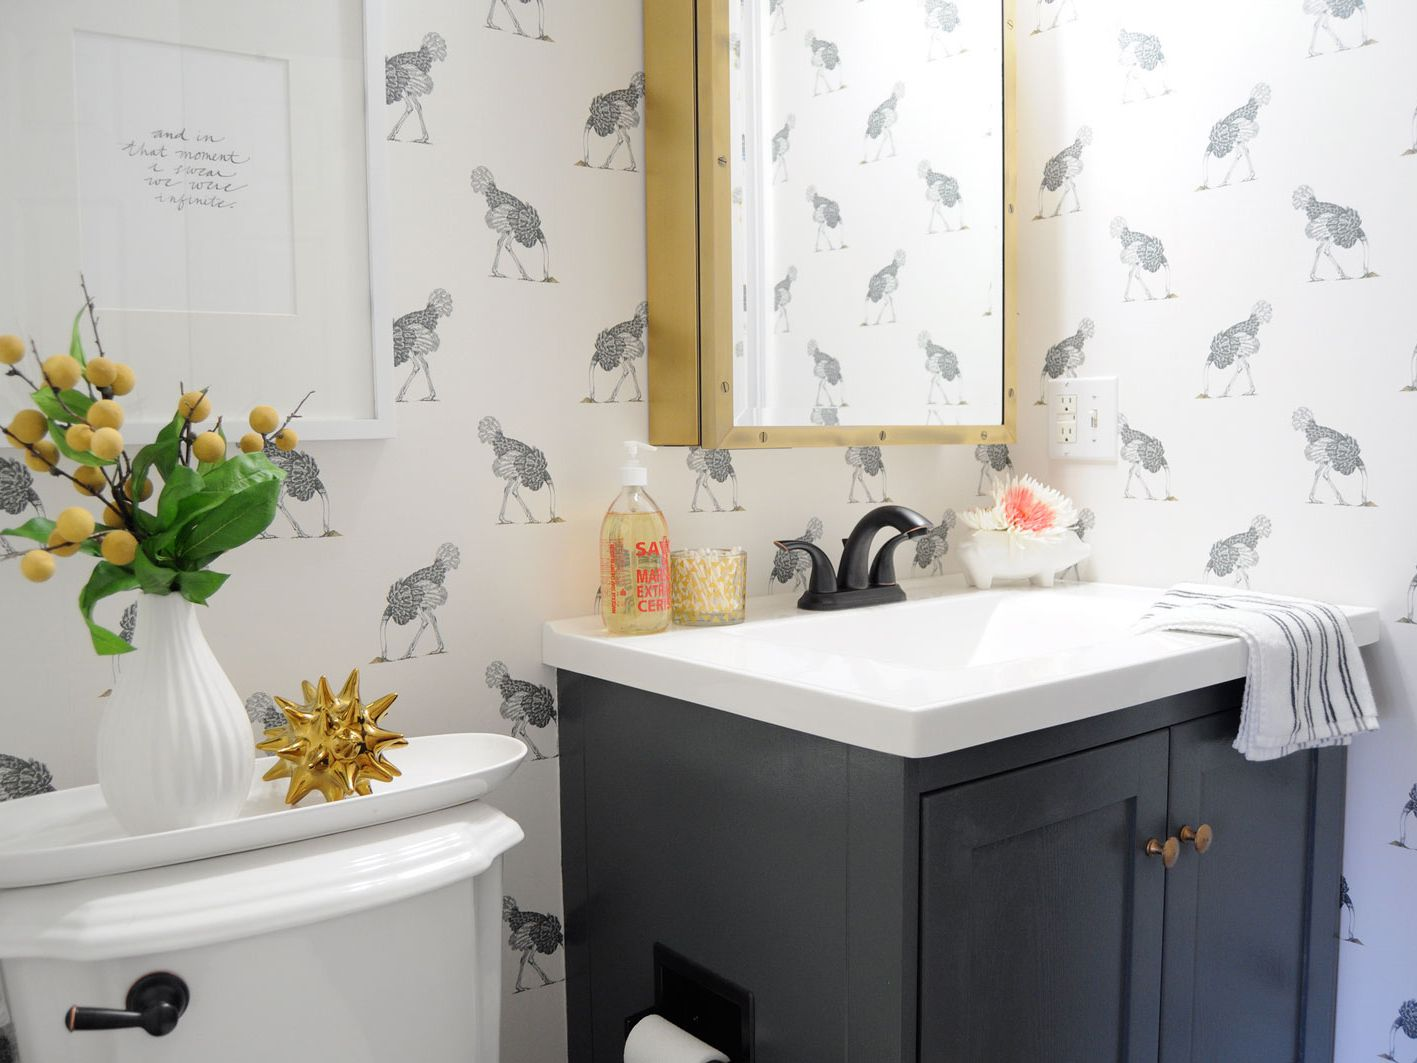 26 Ways to Beautify a Small Bathroom Without Remodeling